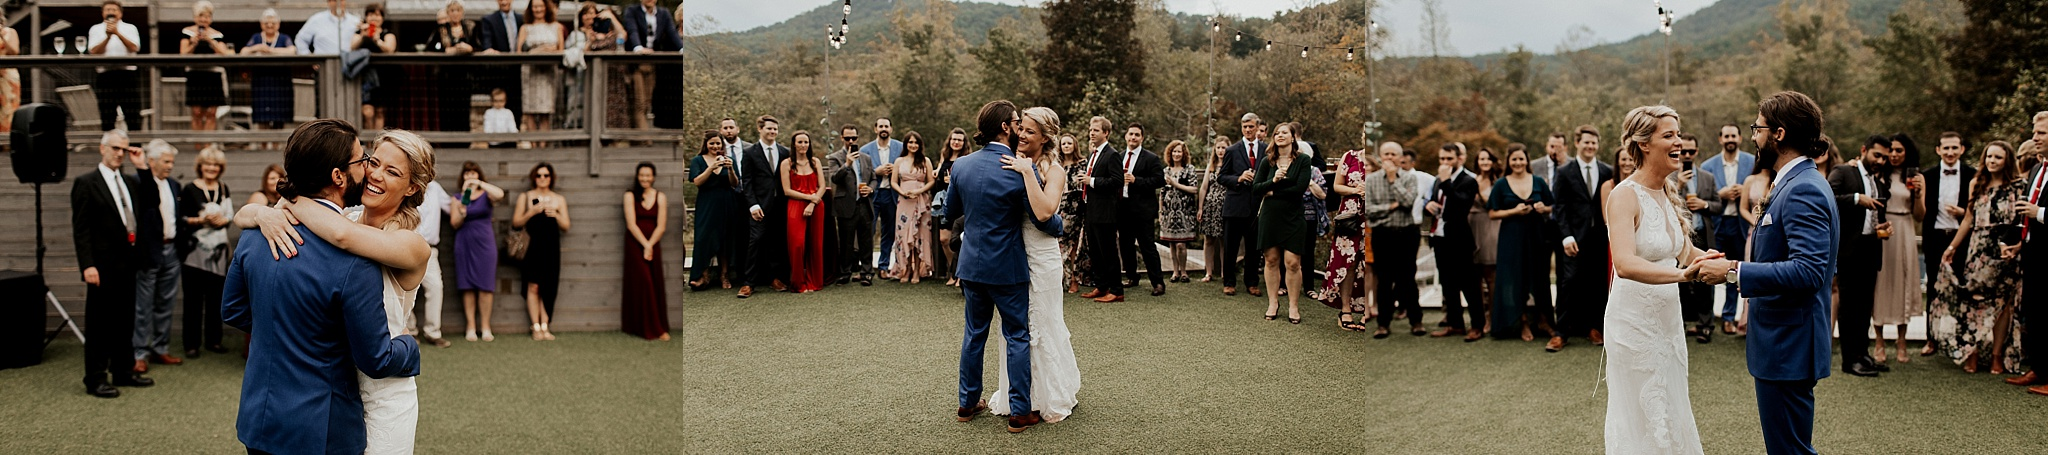 sugarboo_farms_intimate_mountain_wedding075.JPG